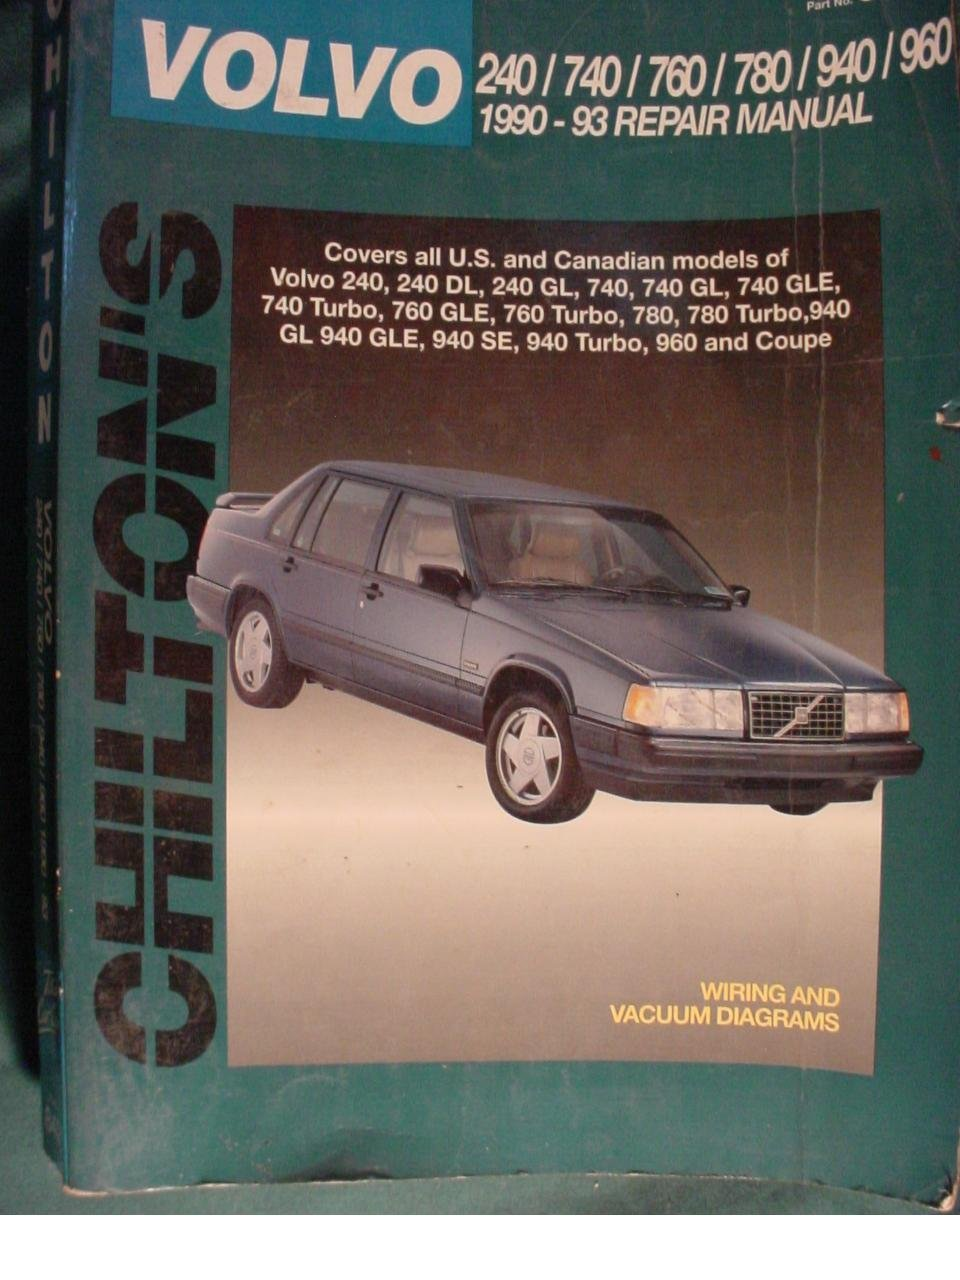 Volvo Saloons, Estates and Coupes, 1990-93 (Chilton's Total Car Care Repair  Manuals): Amazon.co.uk: Chilton Automotive Books, The Nichols/Chilton: ...